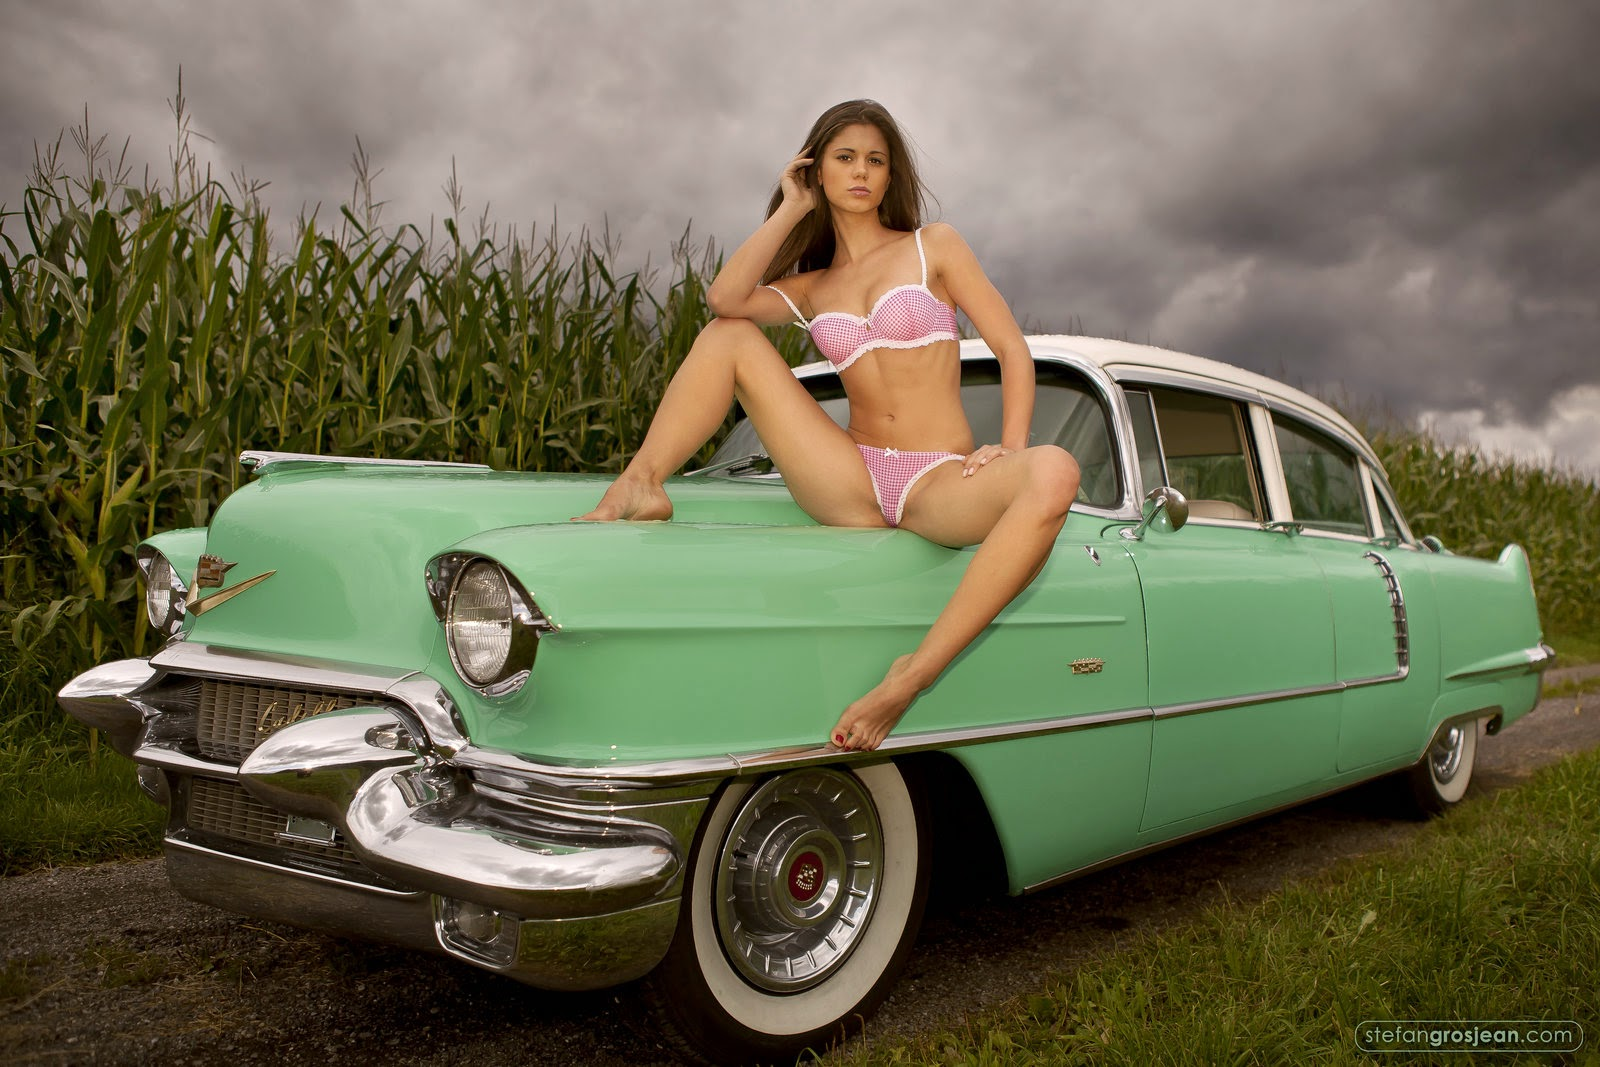 vintage classic cars and girls before the rain storm